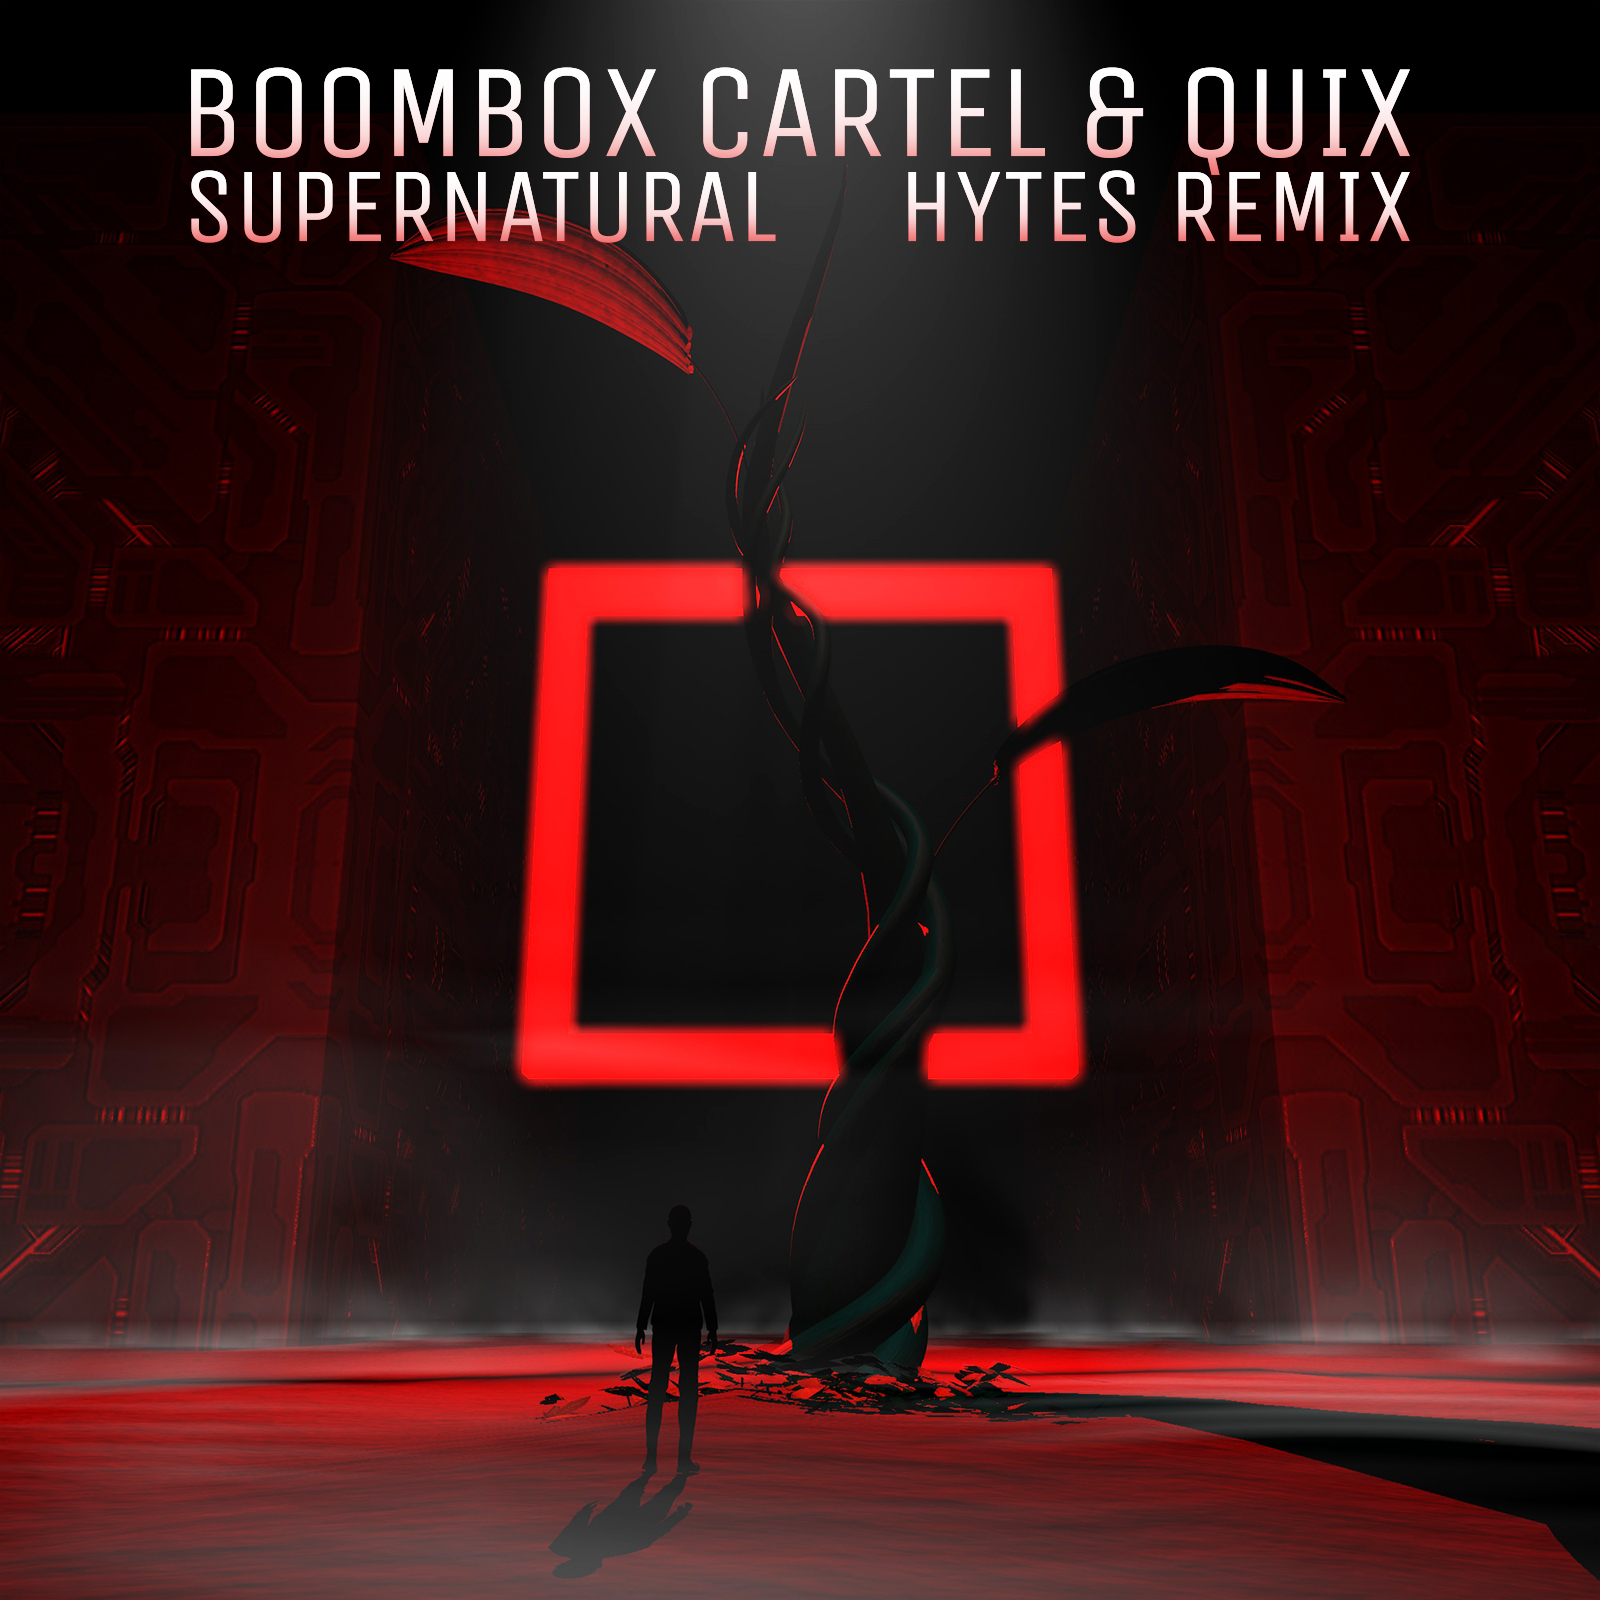 Supernatural (Hytes Remix)